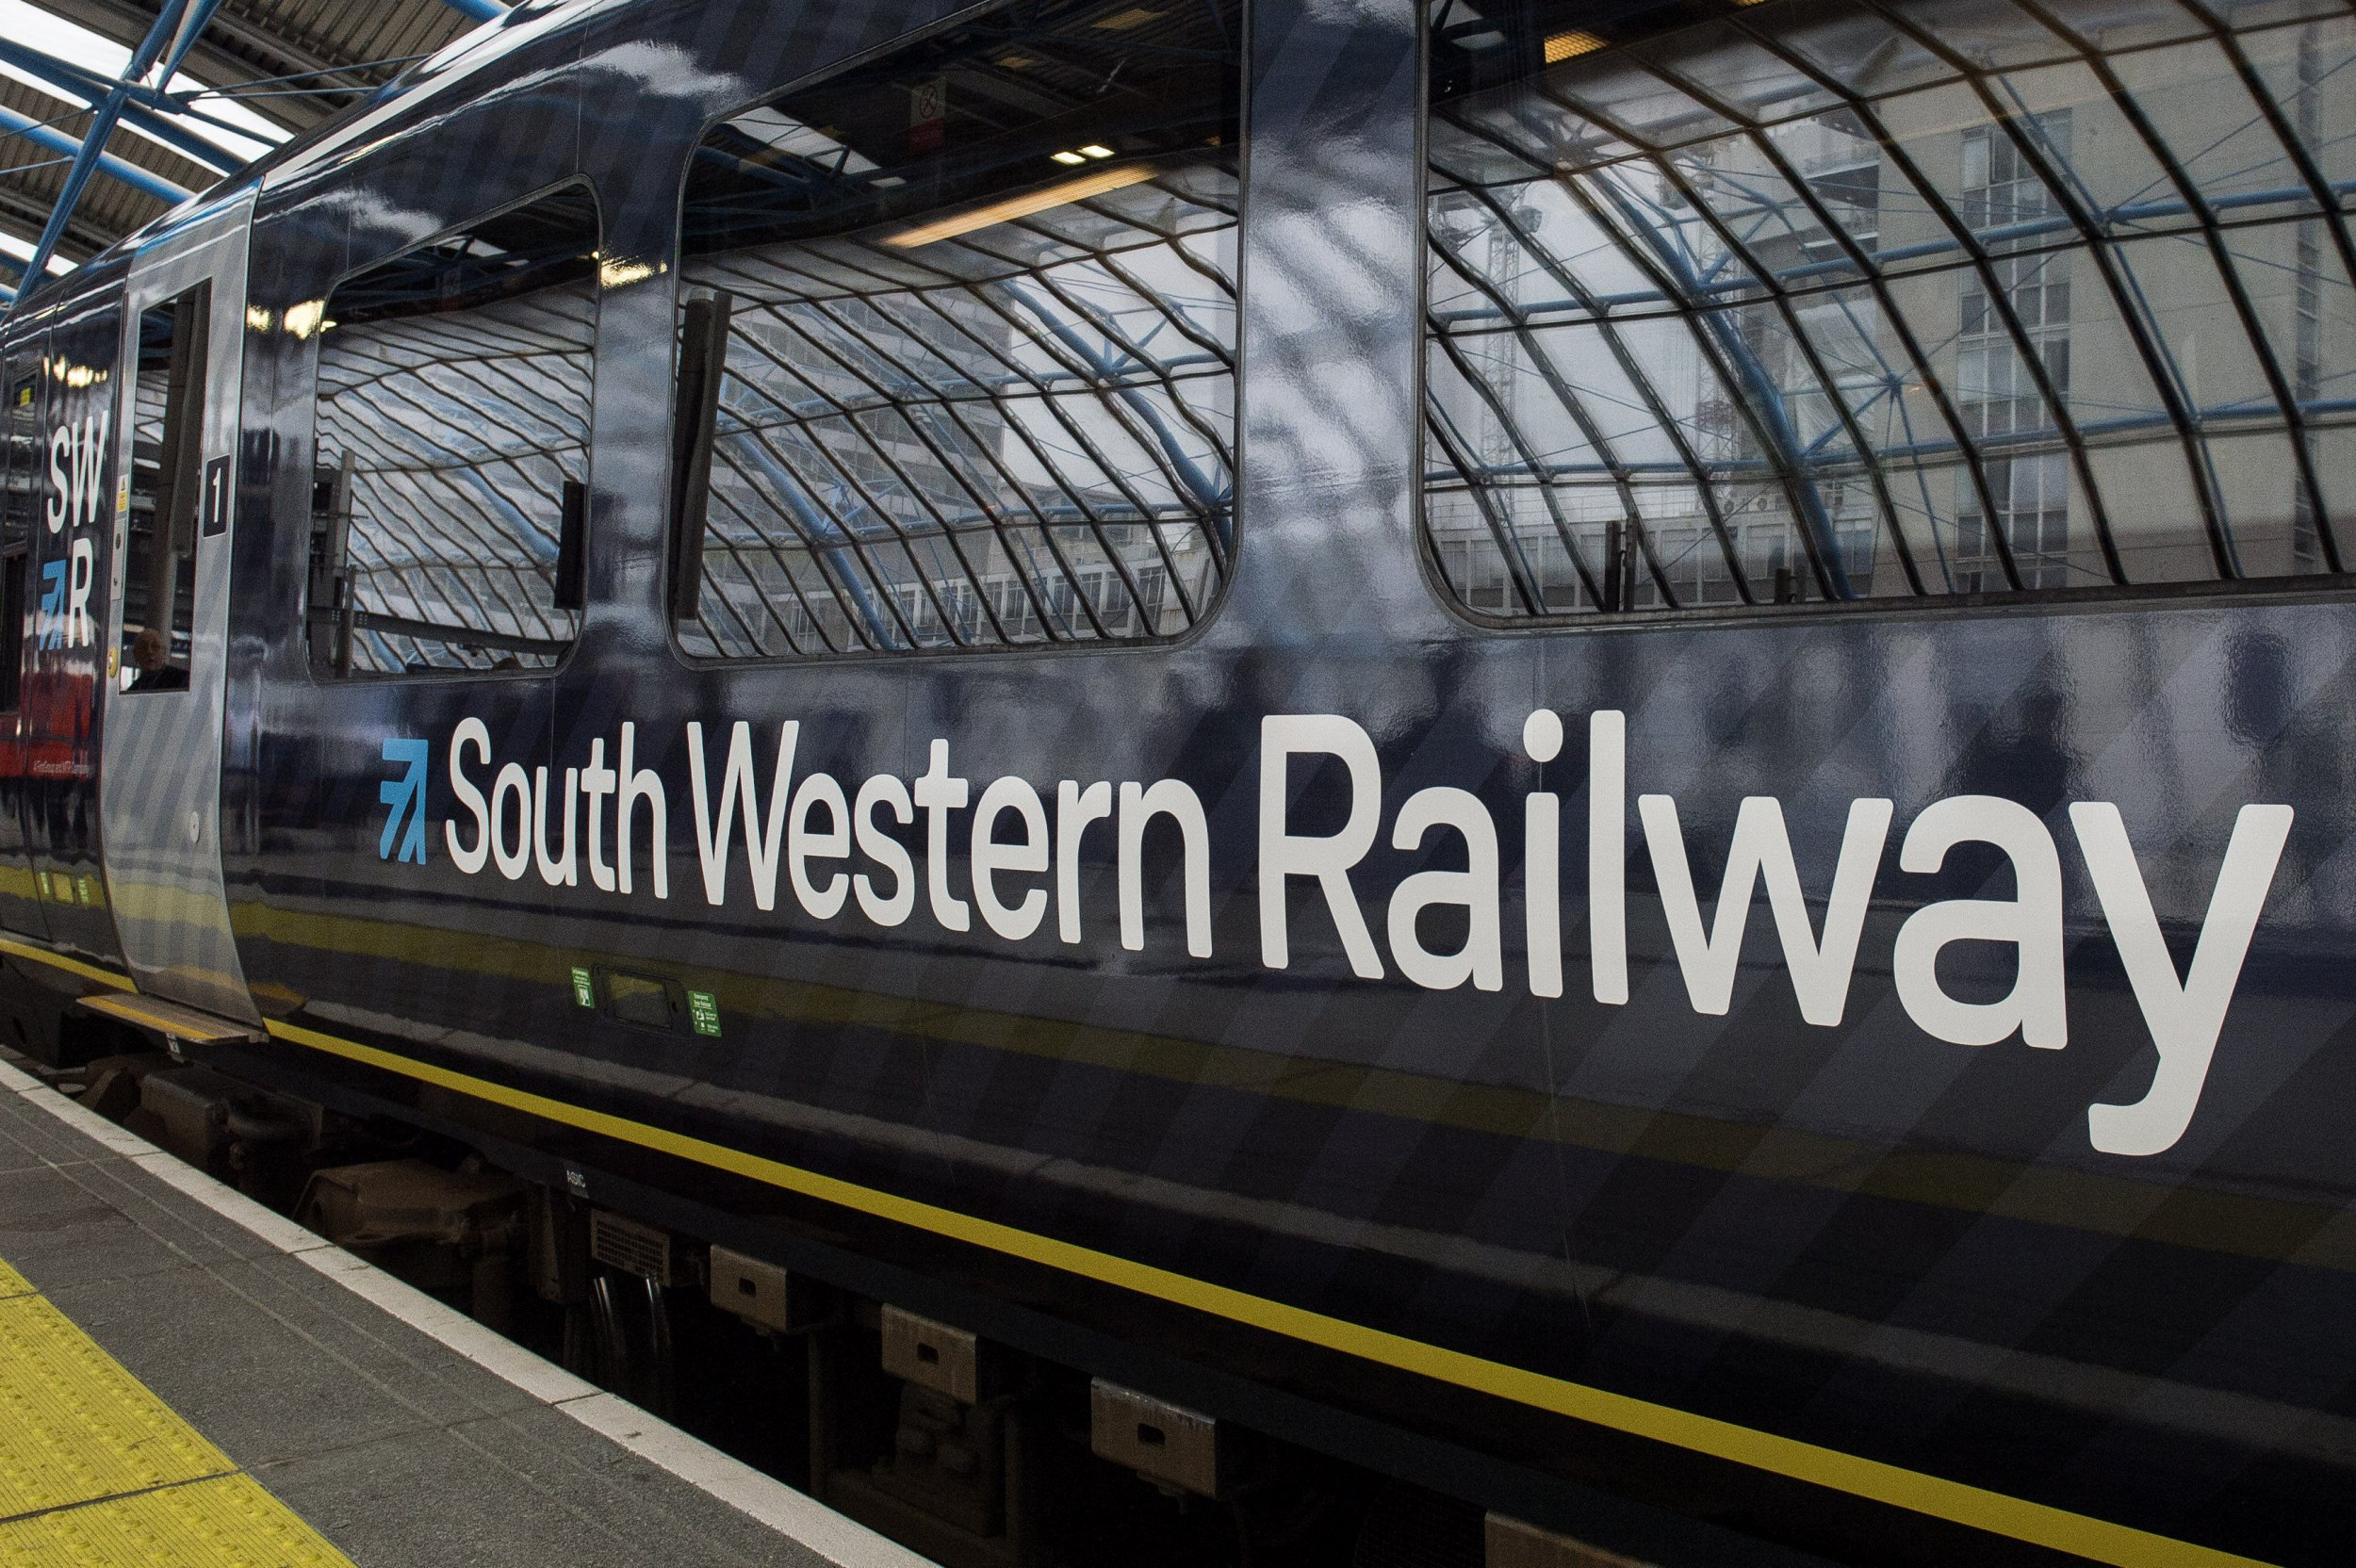 File photo dated 04/09/17 of a South Western Railway (SWR) train. Members of the Rail, Maritime and Transport union on SWR have started a 48-hour walkout in the the long-running dispute over driver-only trains. PRESS ASSOCIATION Photo. Issue date: Friday October 5, 2018. See PA story INDUSTRY Rail. Photo credit should read: Victoria Jones/PA Wire